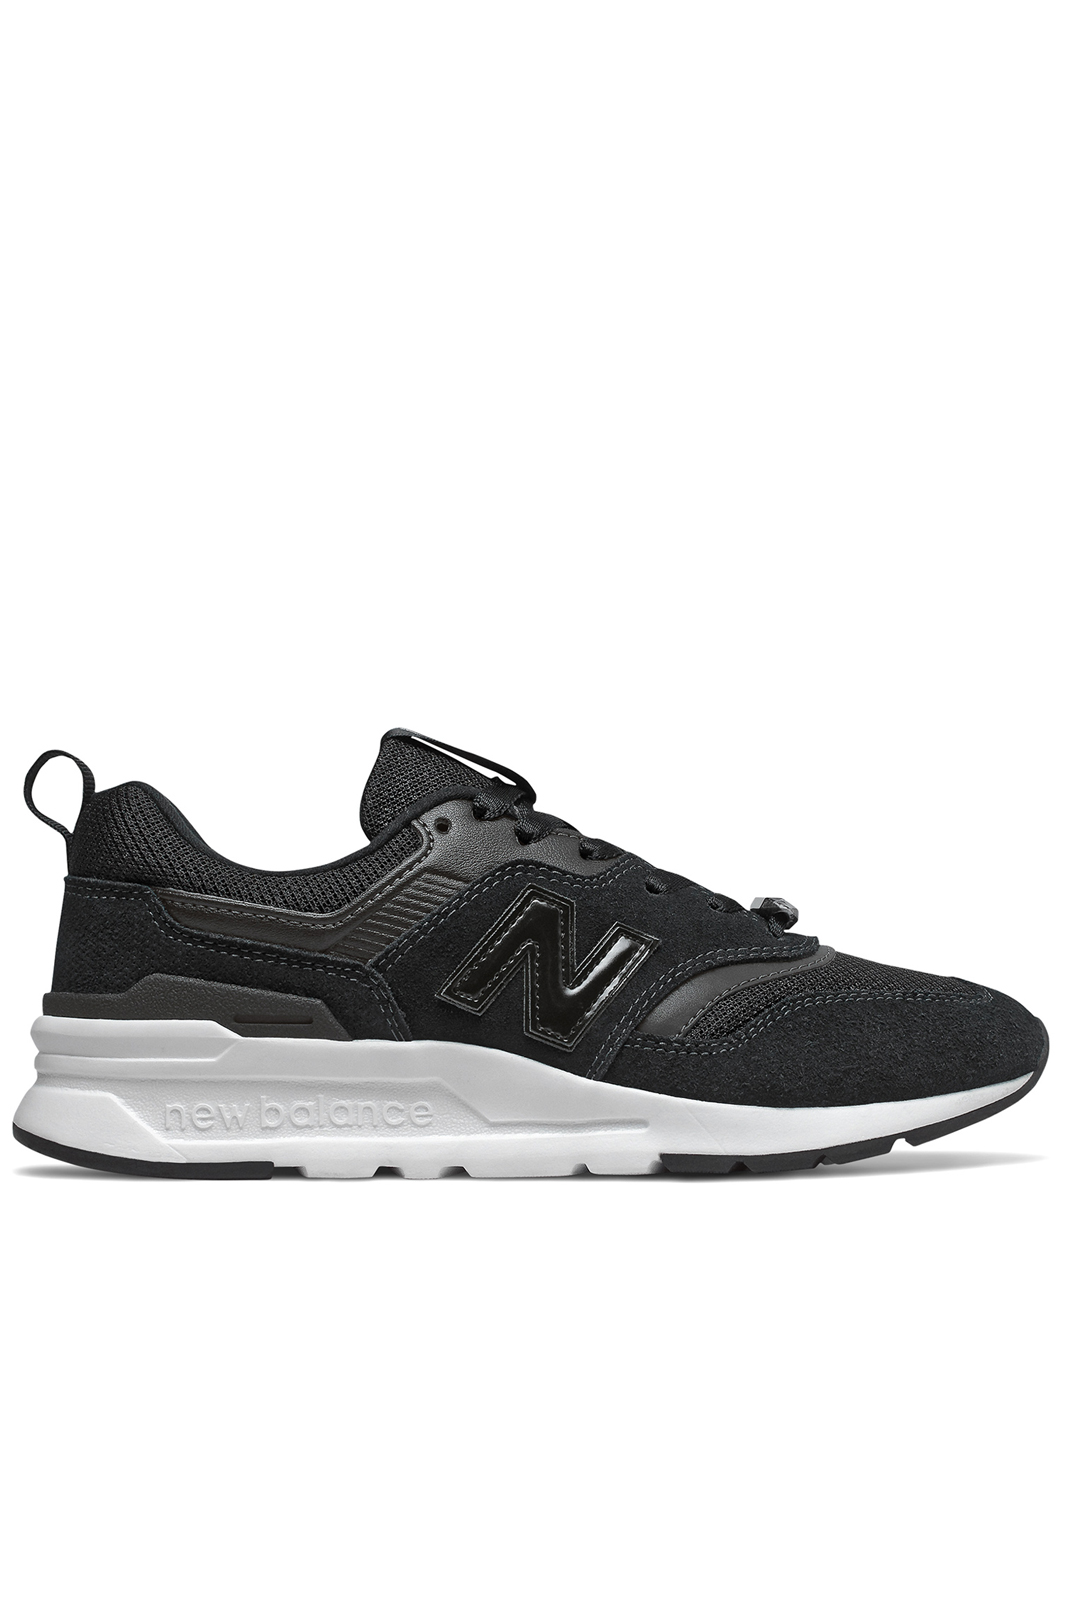 Baskets / Sneakers  New balance CW997HJB NOIR